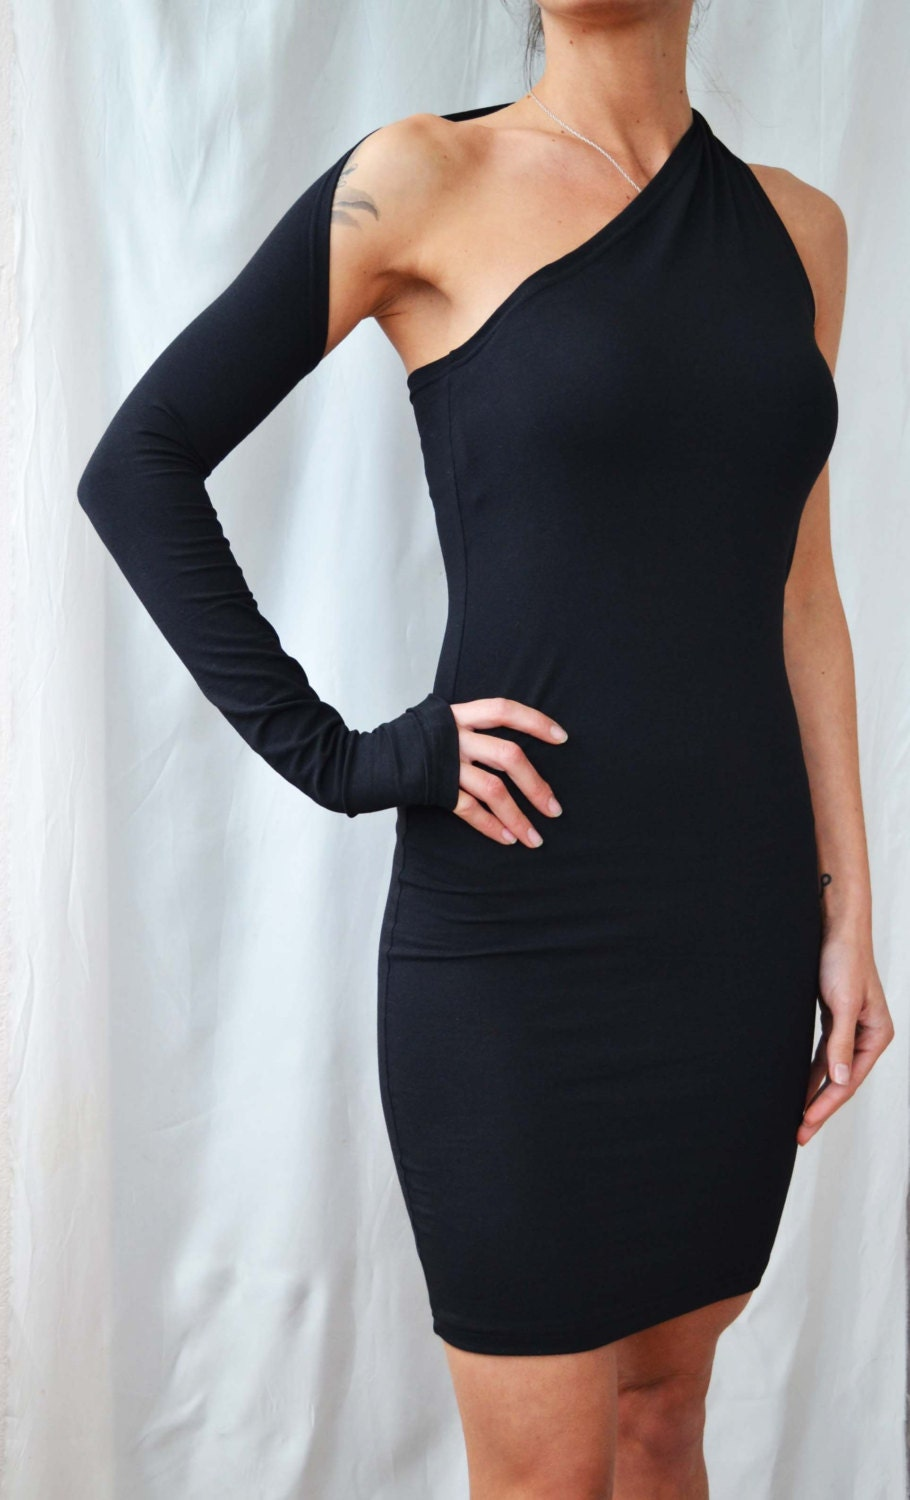 Tobi's new line of one shoulder designs includes mini dresses, midi dresses, and two-piece sets. These elegant dresses will hug your curves in classic bodycon silhouettes! The color palette for Tobi's one shoulder frocks includes black, grey, silver, and ivory.